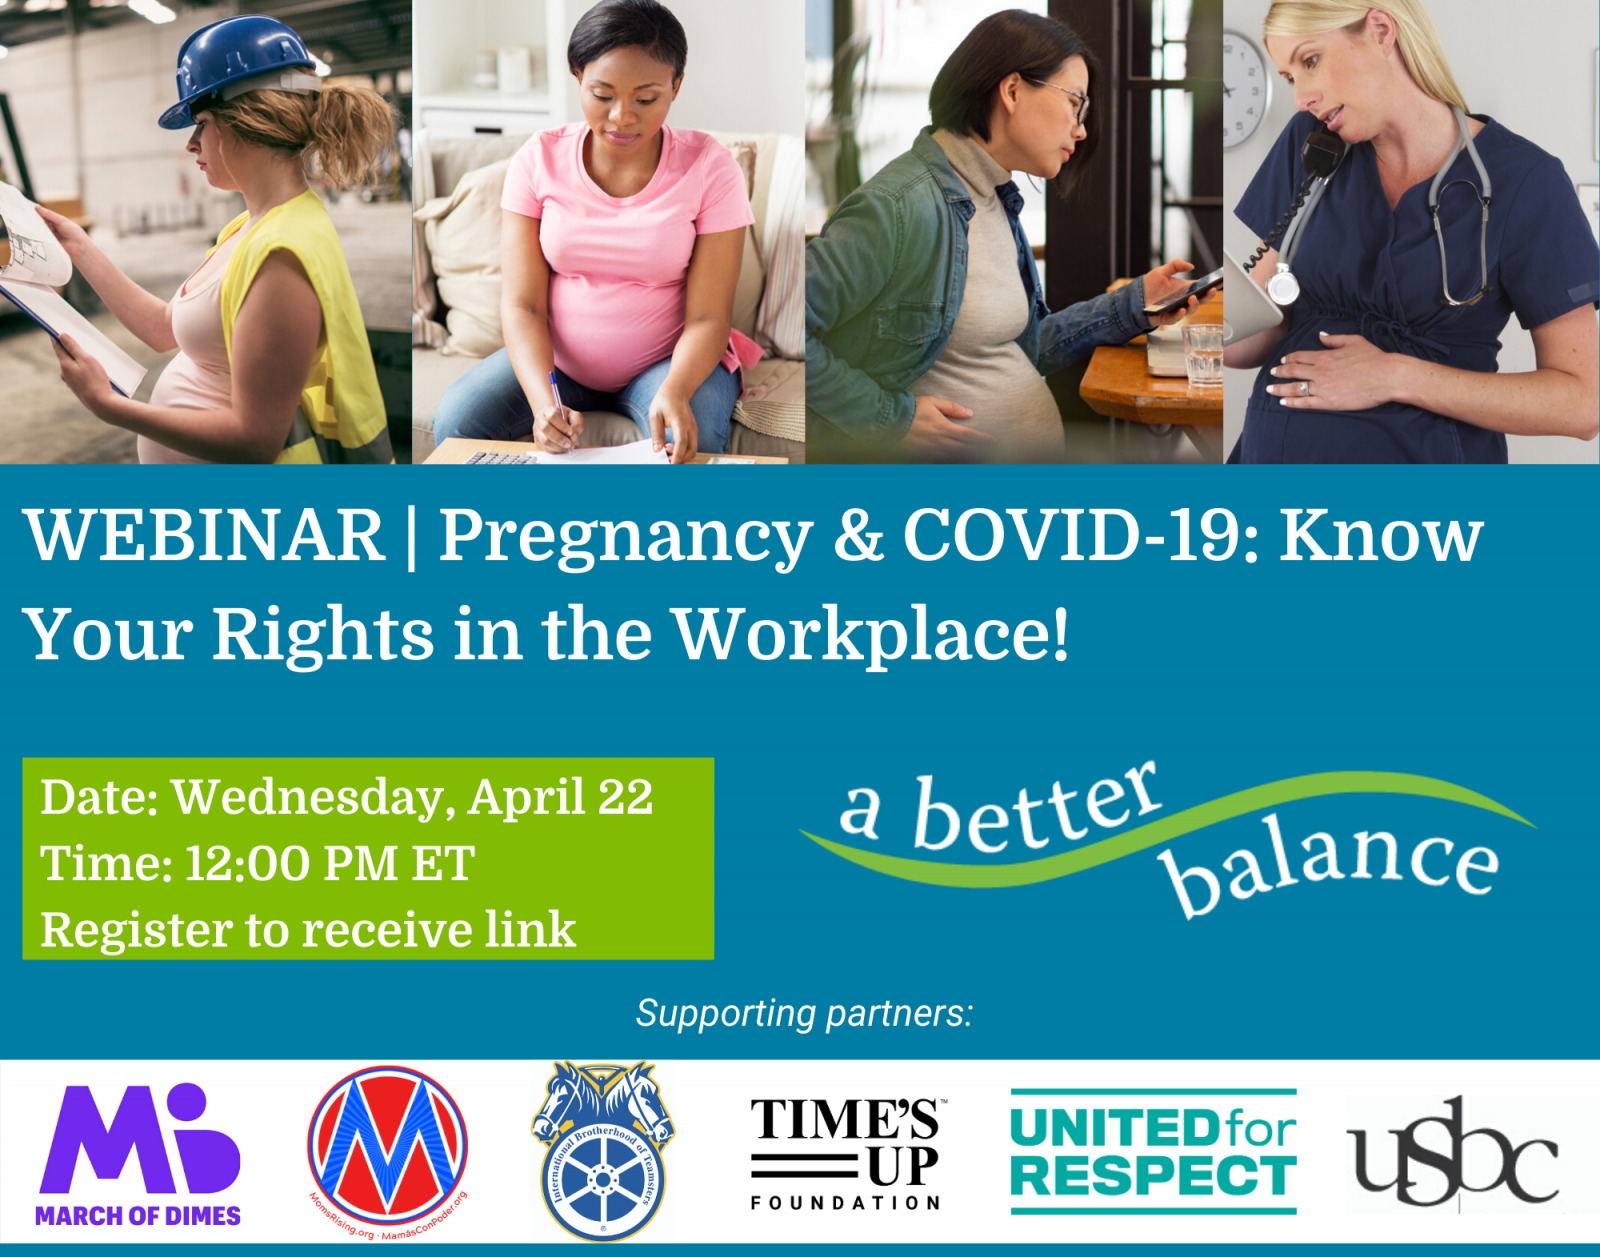 WEBINAR: Know Your Pregnancy & Workplace Rights During COVID-19 & Beyond